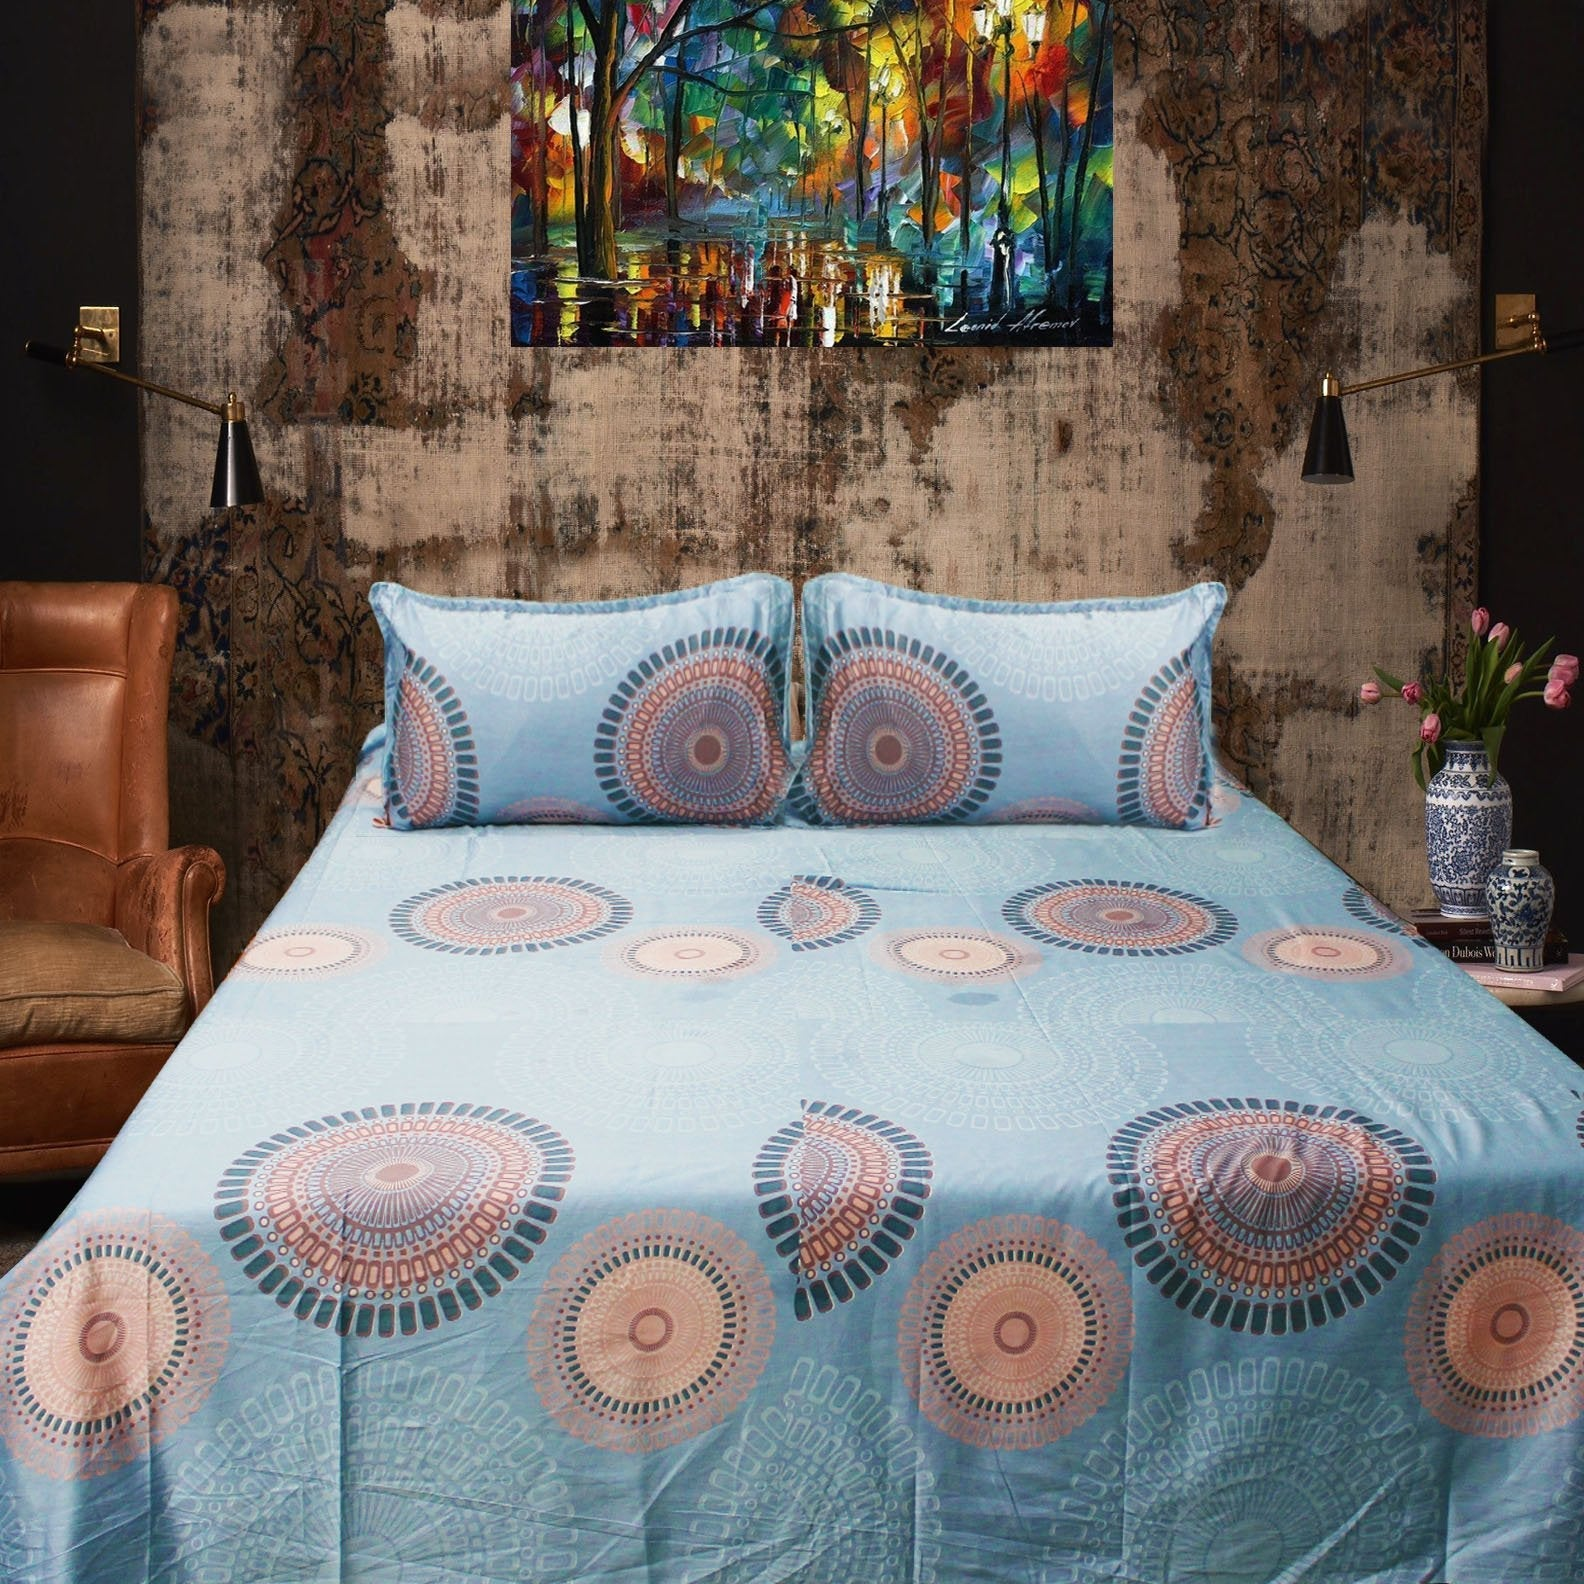 Circle Design - Cotton Satin Bed Sheet With 2 Pillow Cases